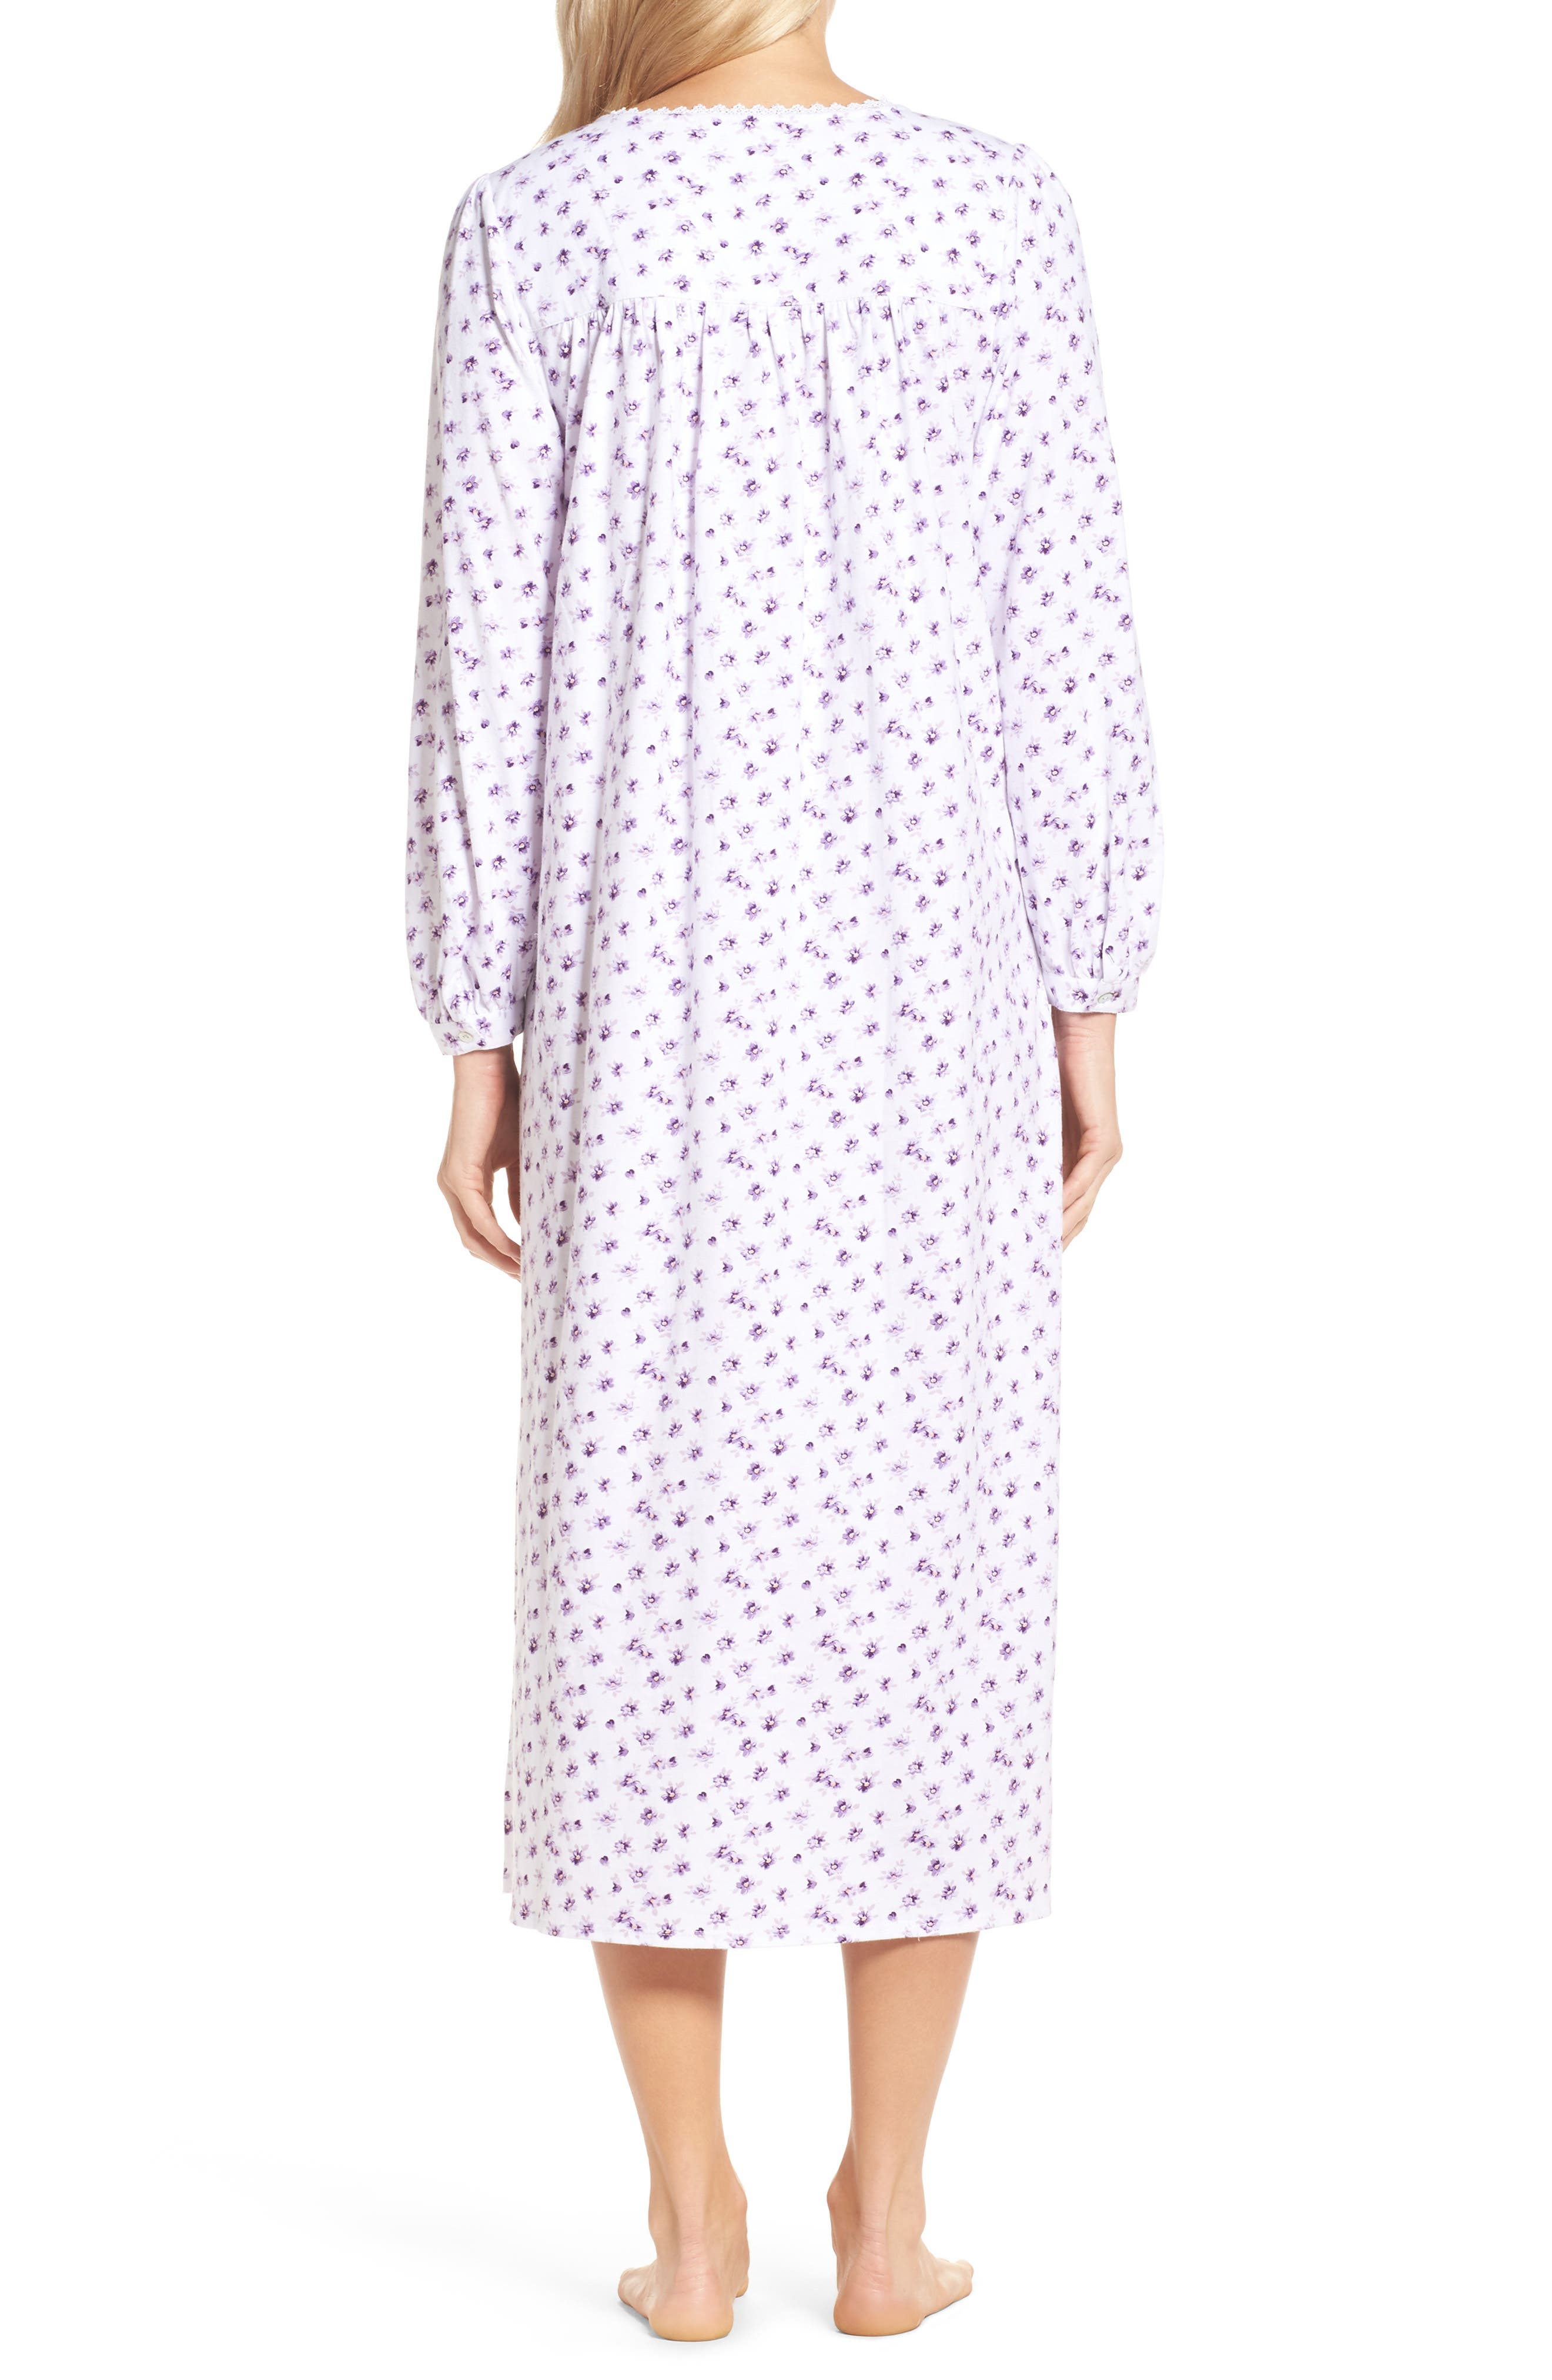 Ballet Nightgown,                             Alternate thumbnail 2, color,                             White/ Lilac